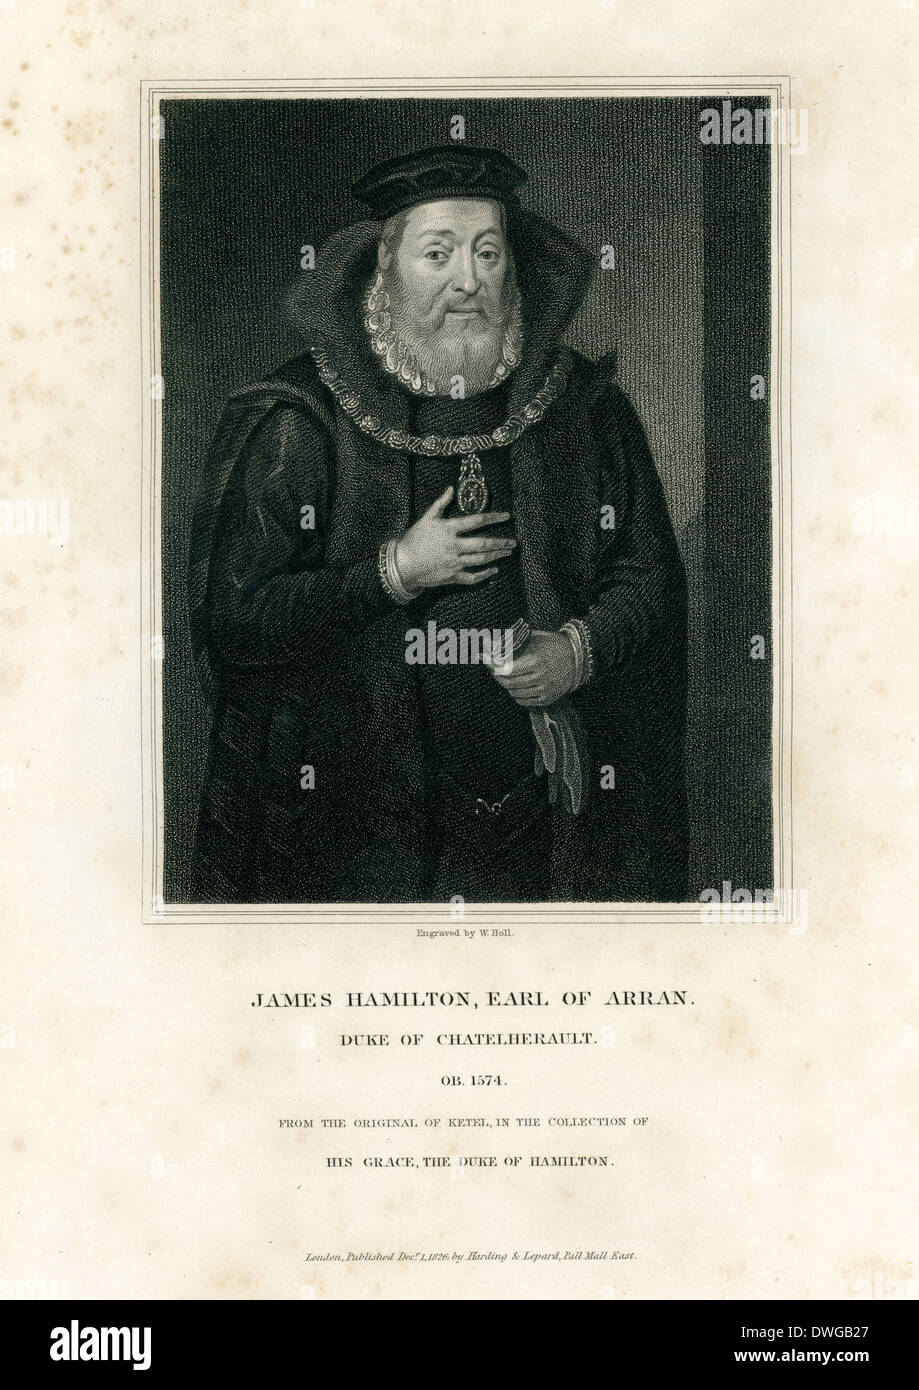 Portrait of James Hamilton, Earl of Arran, Duke of Chatelherault. - Stock Image